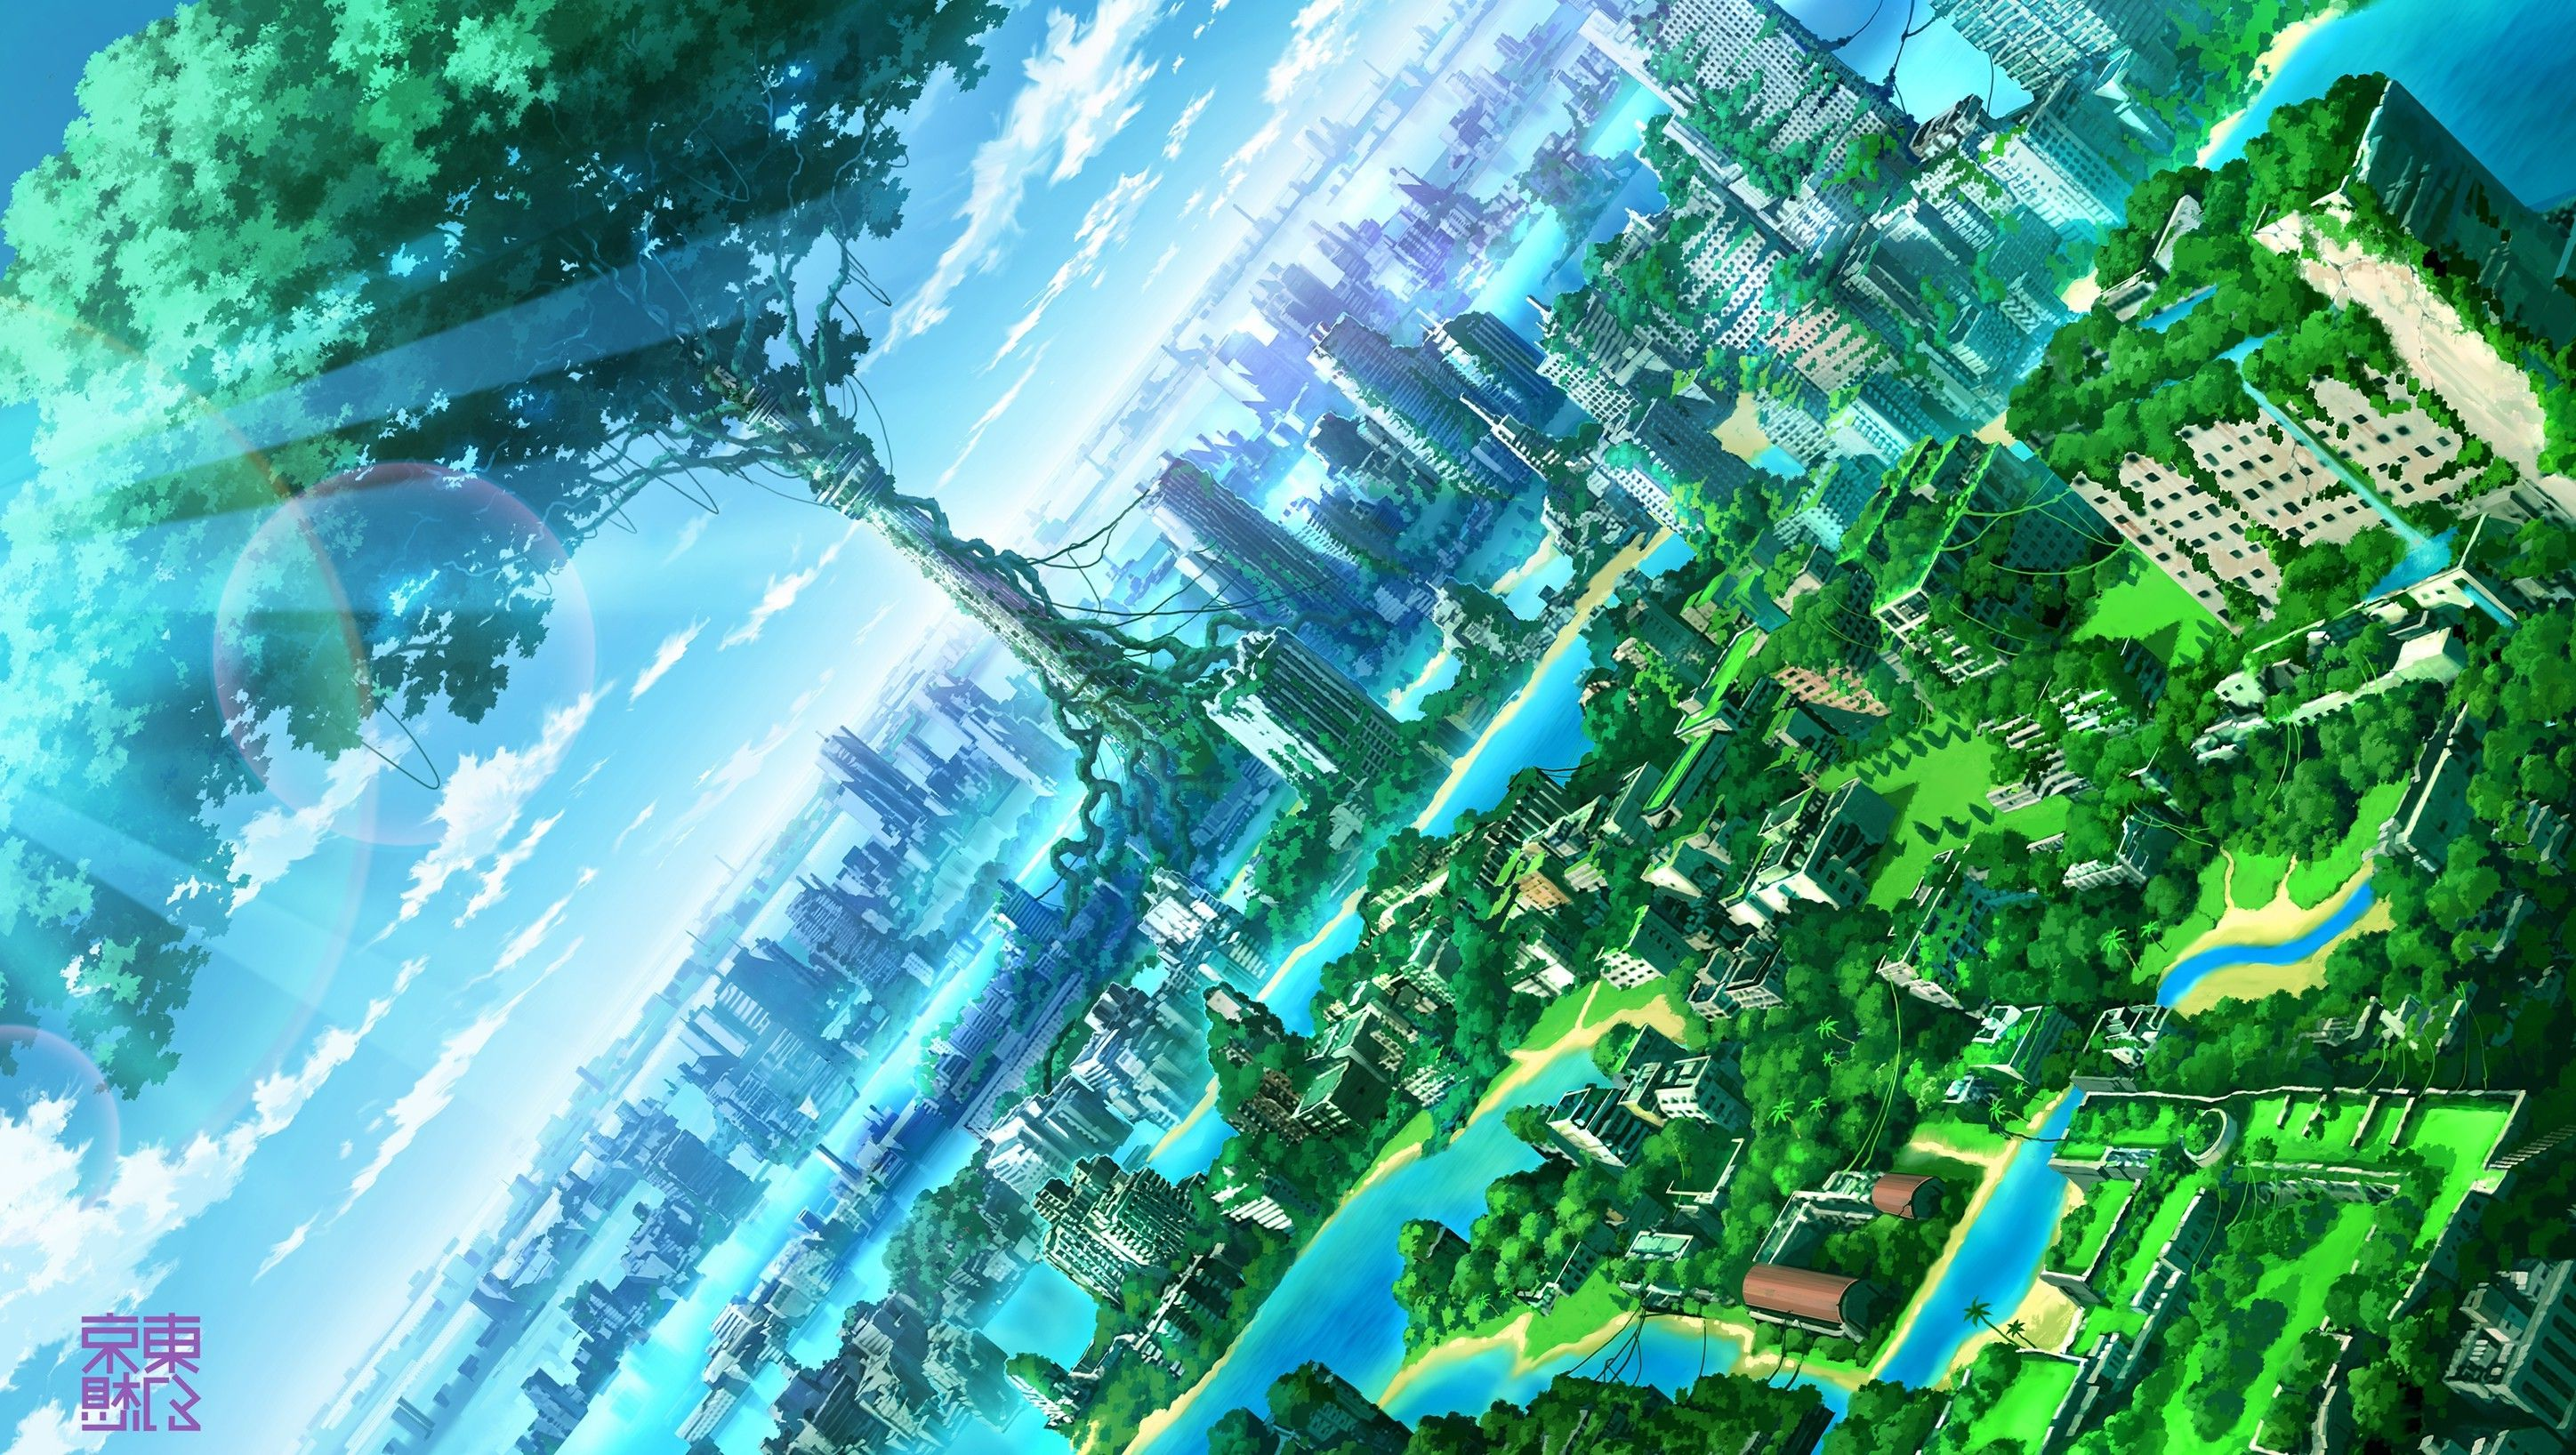 2896x1636 anime, Artwork, Fantasy Art, City, Nature Wallpapers HD / Desktop ...